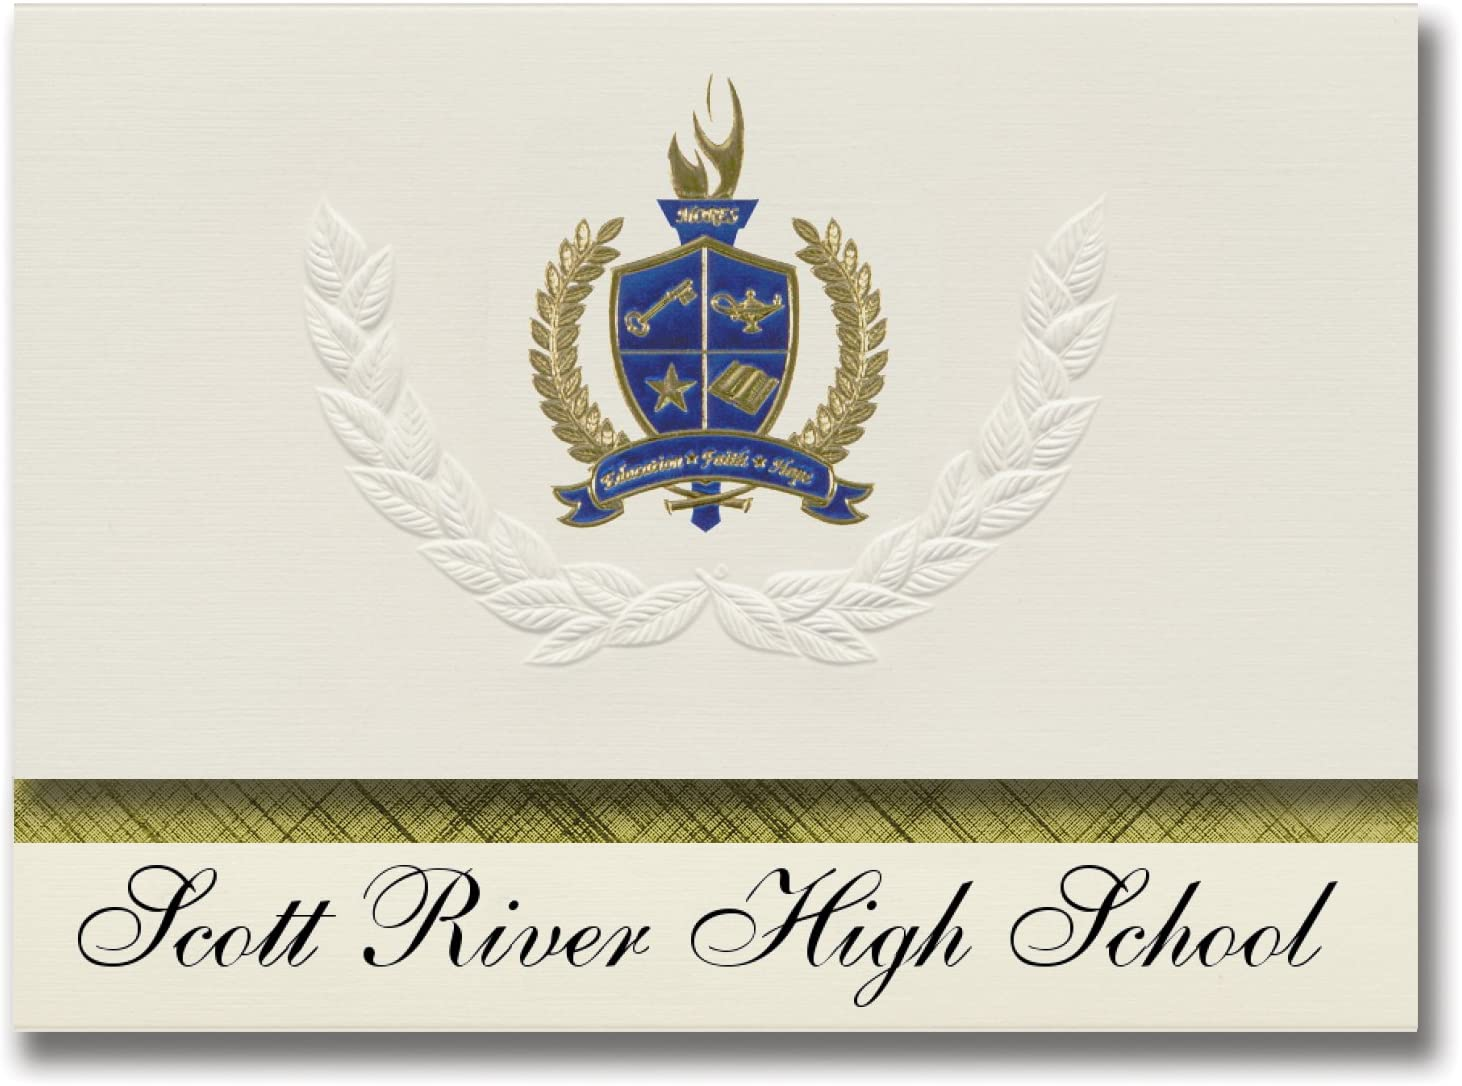 Signature Announcements Scott River High School (Etna, CA) Graduation Announcements, Presidential style, Elite package of 25 with Gold & Blue Metallic Foil seal